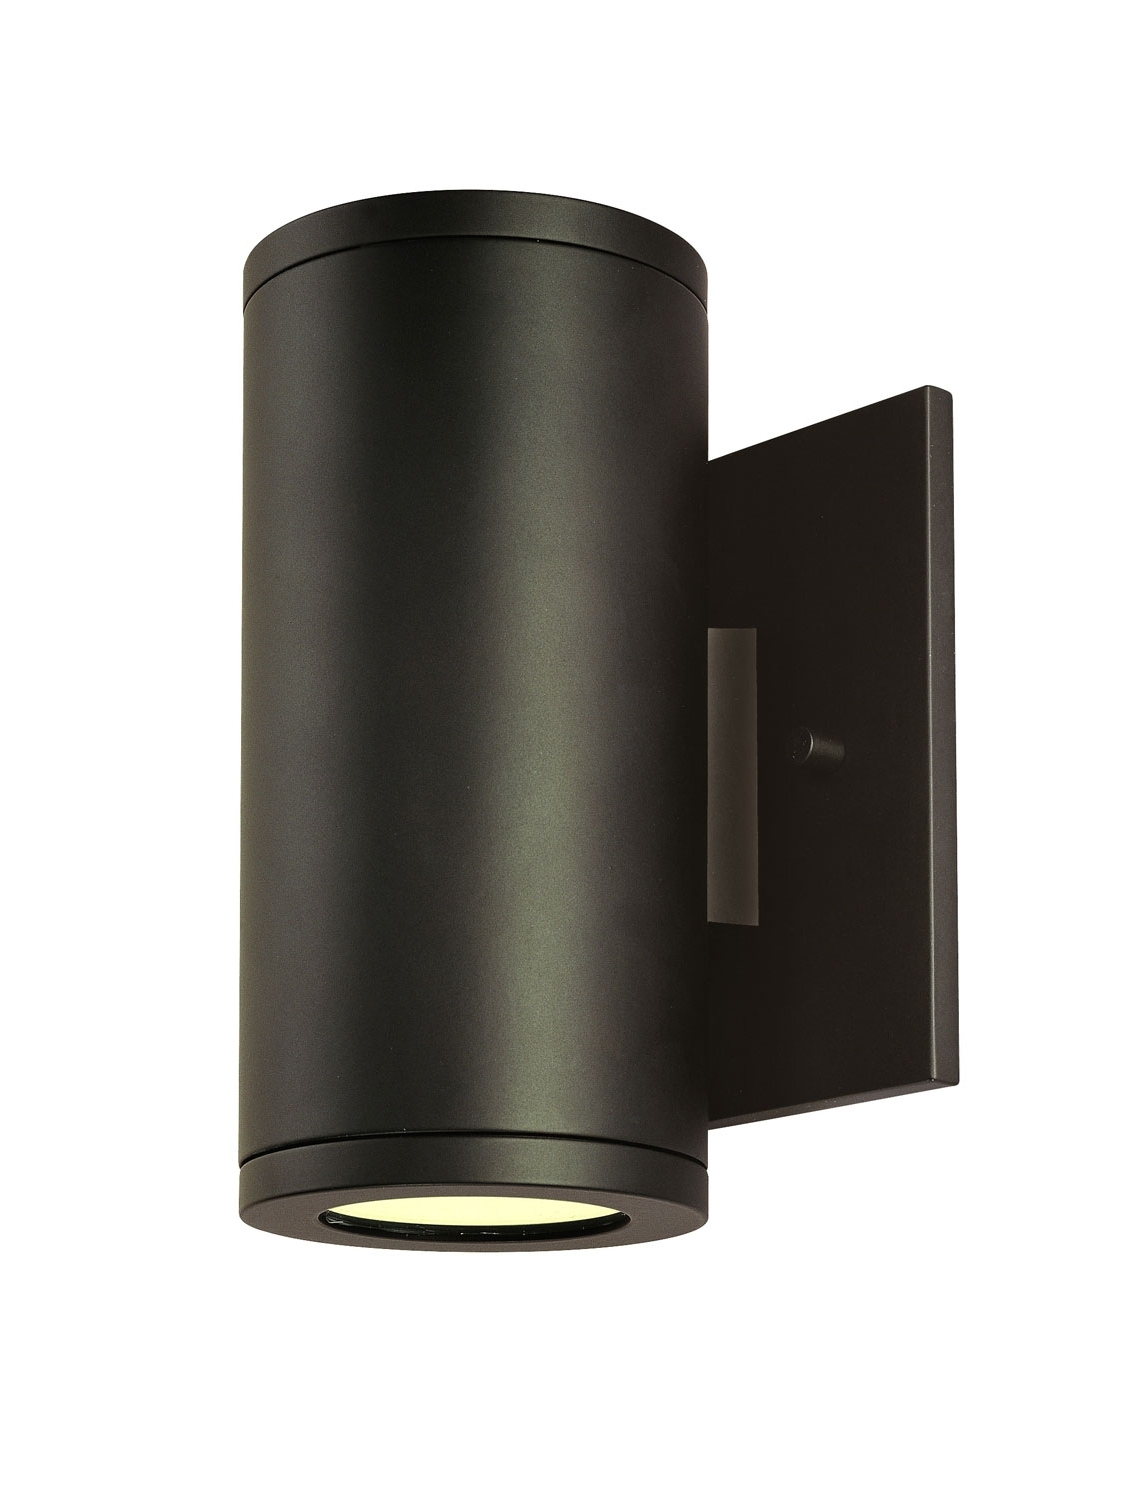 Fashionable Lamp: Loved Outdoor Wall Lighting Designs Wall Sconces Outdoor Intended For Singapore Outdoor Wall Lighting (View 4 of 20)